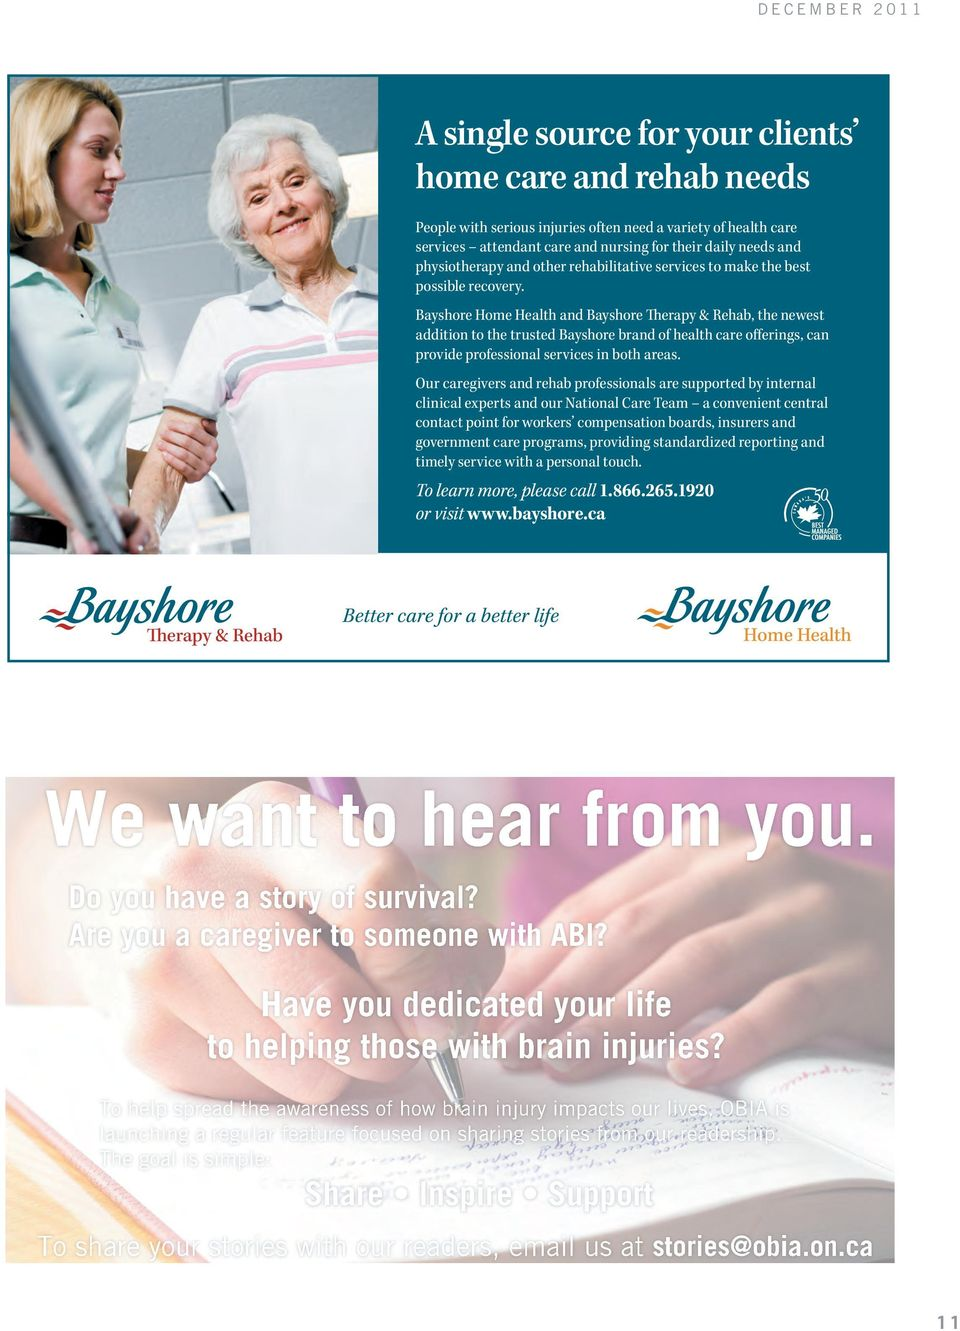 Bayshore Home Health and Bayshore Therapy & Rehab, the newest addition to the trusted Bayshore brand of health care offerings, can provide professional services in both areas.